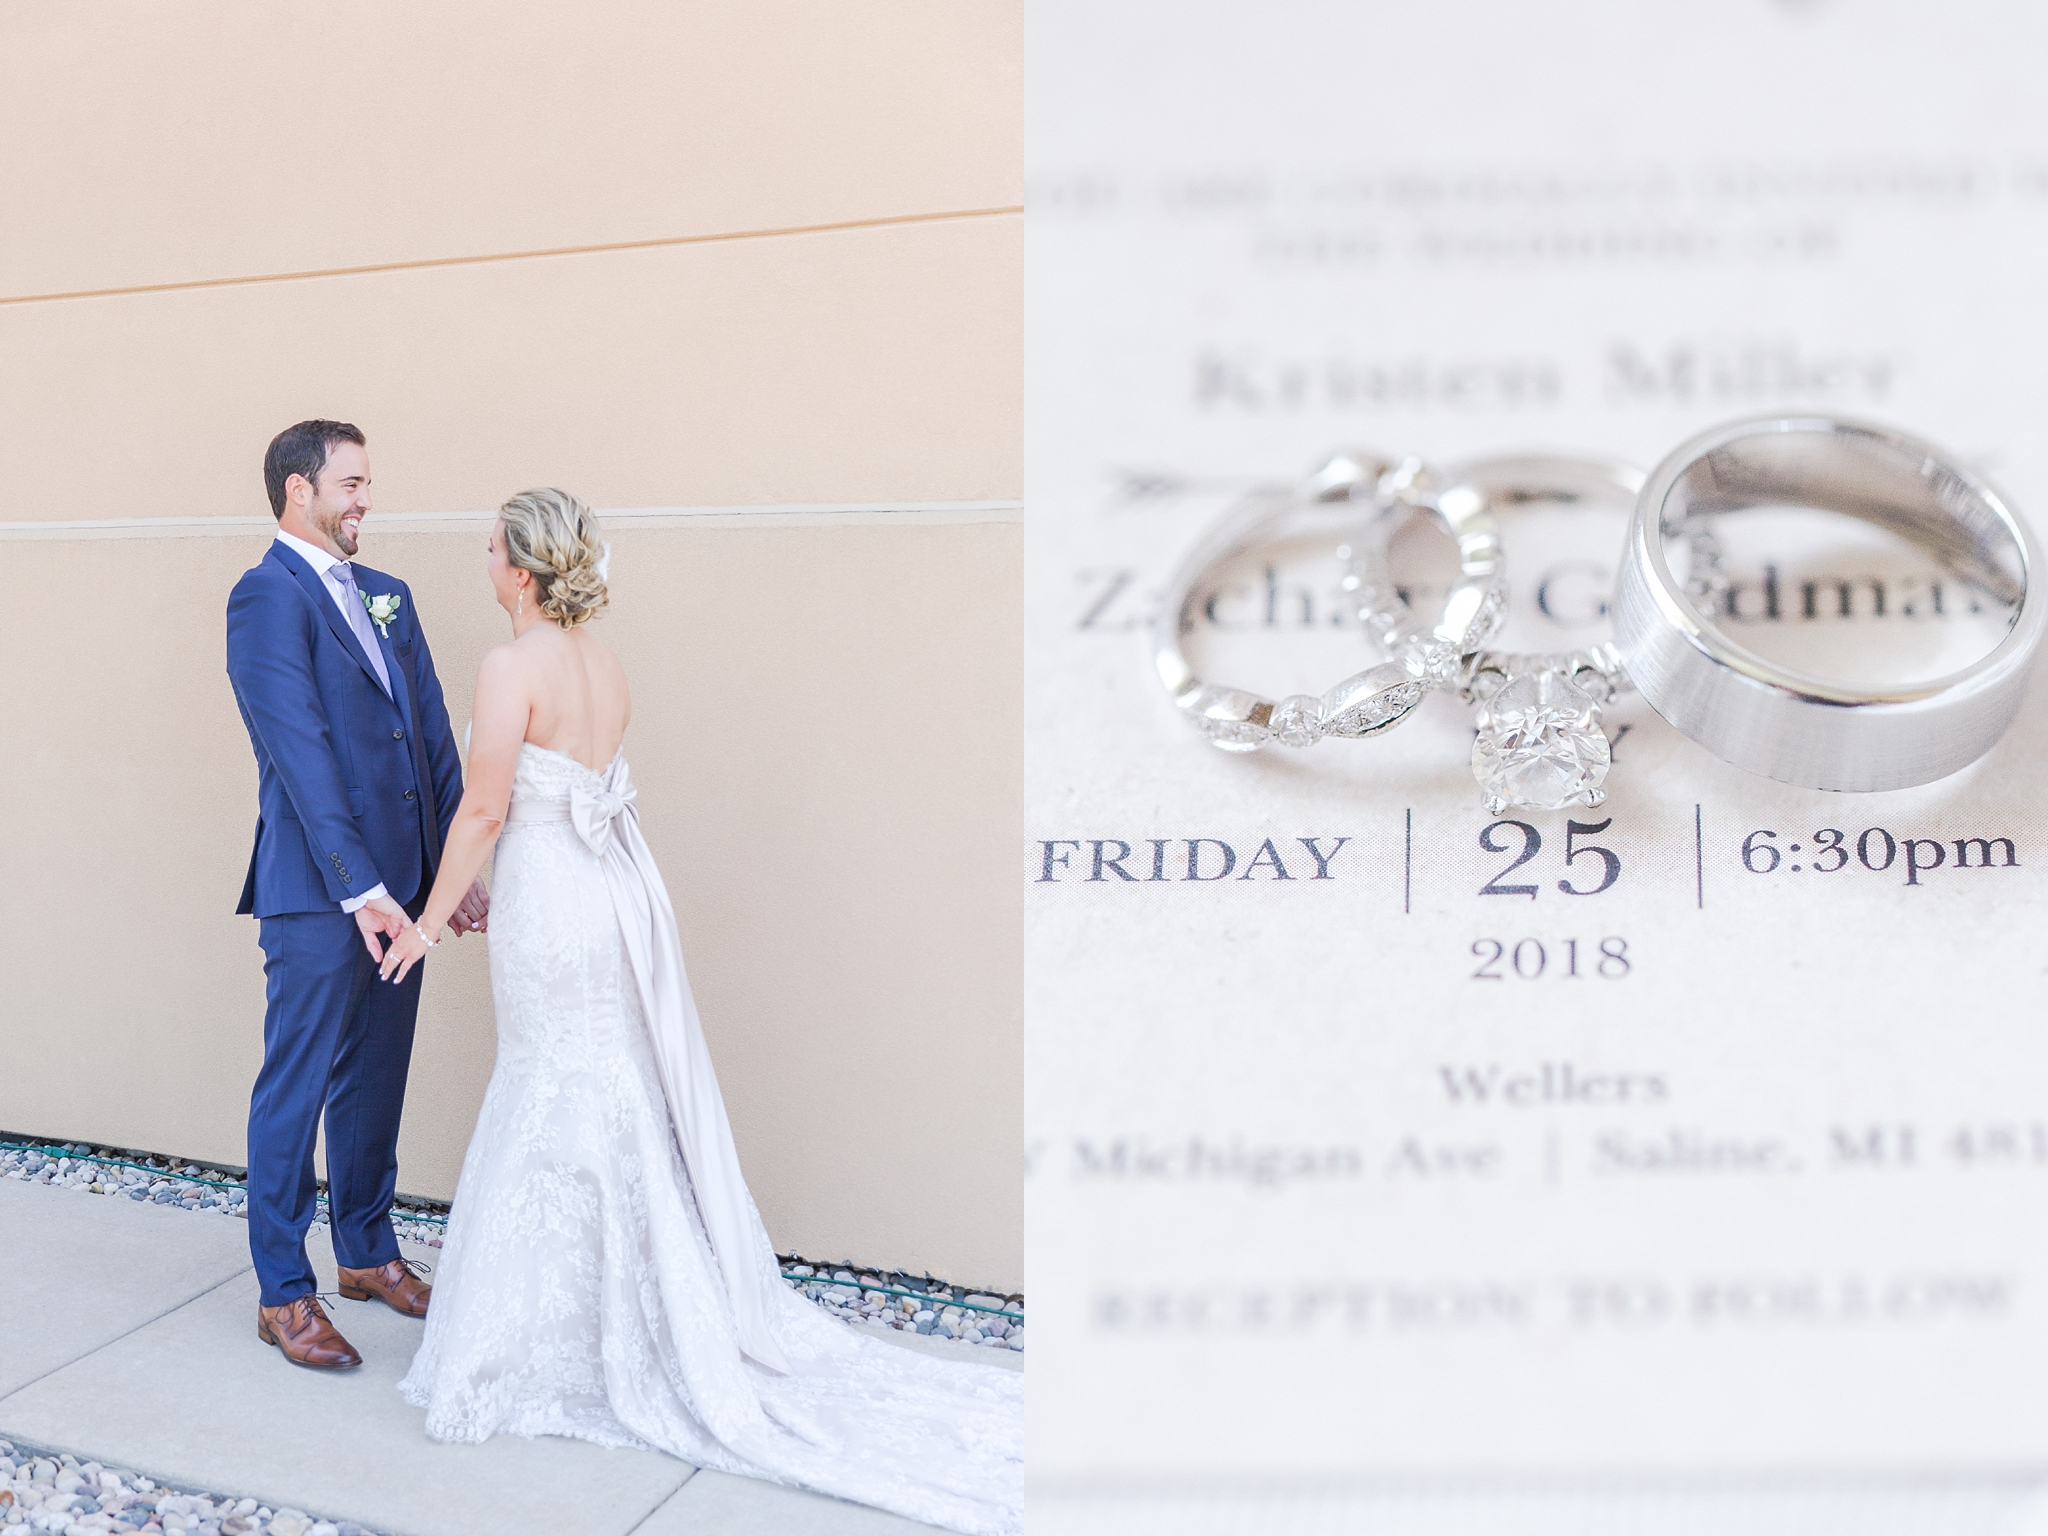 fun-candid-laid-back-wedding-photos-at-wellers-carriage-house-in-saline-michigan-and-at-the-eagle-crest-golf-resort-by-courtney-carolyn-photography_0022.jpg